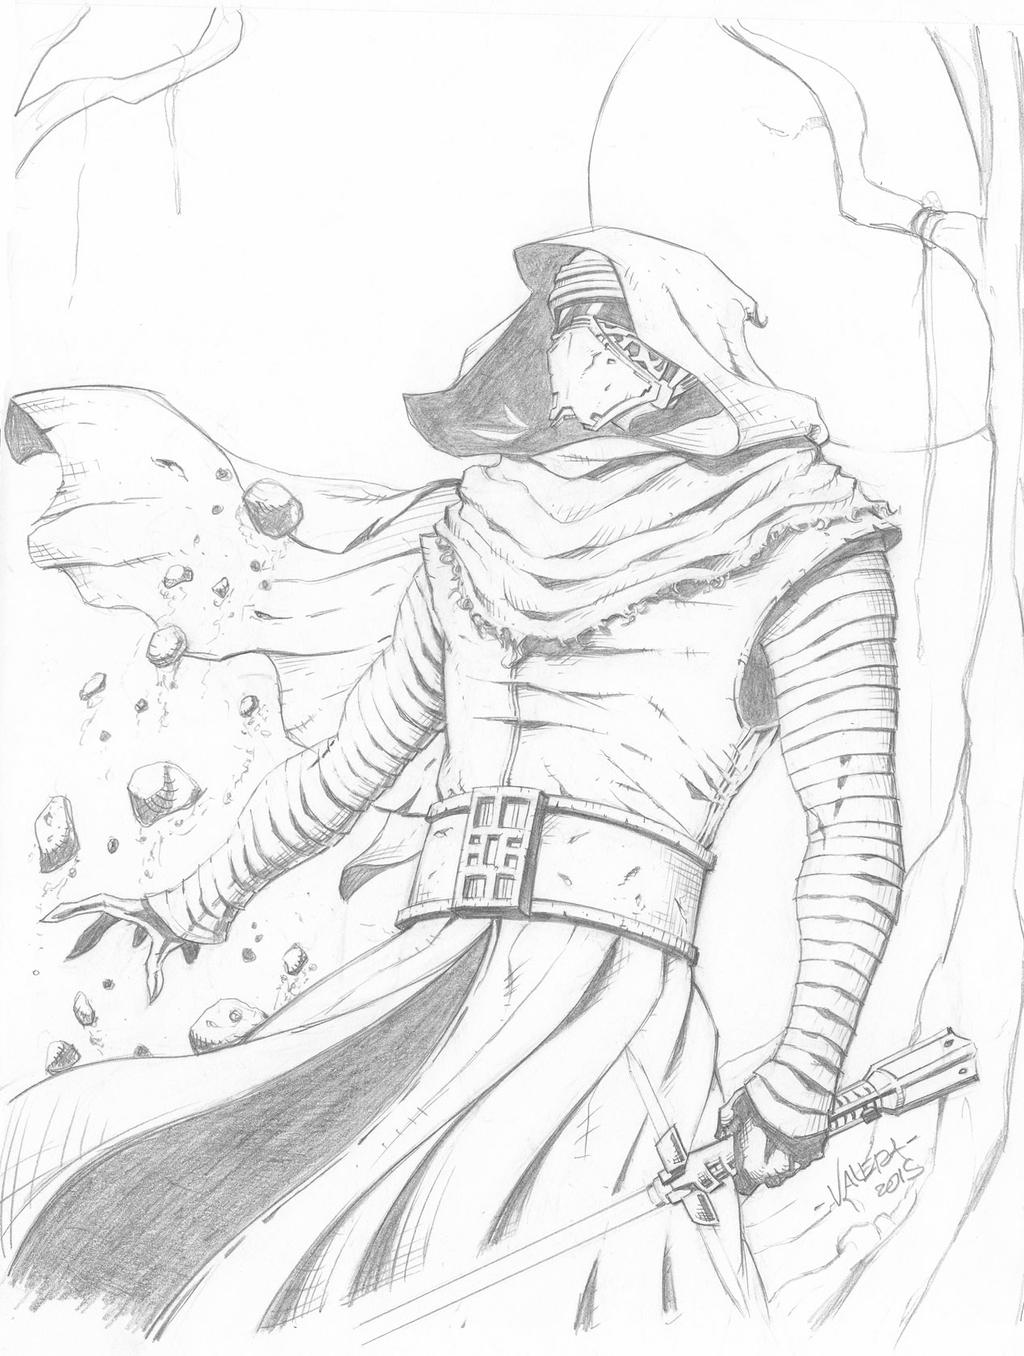 Kylo ren sketch by rv1994 on deviantart for Kylo ren coloring page